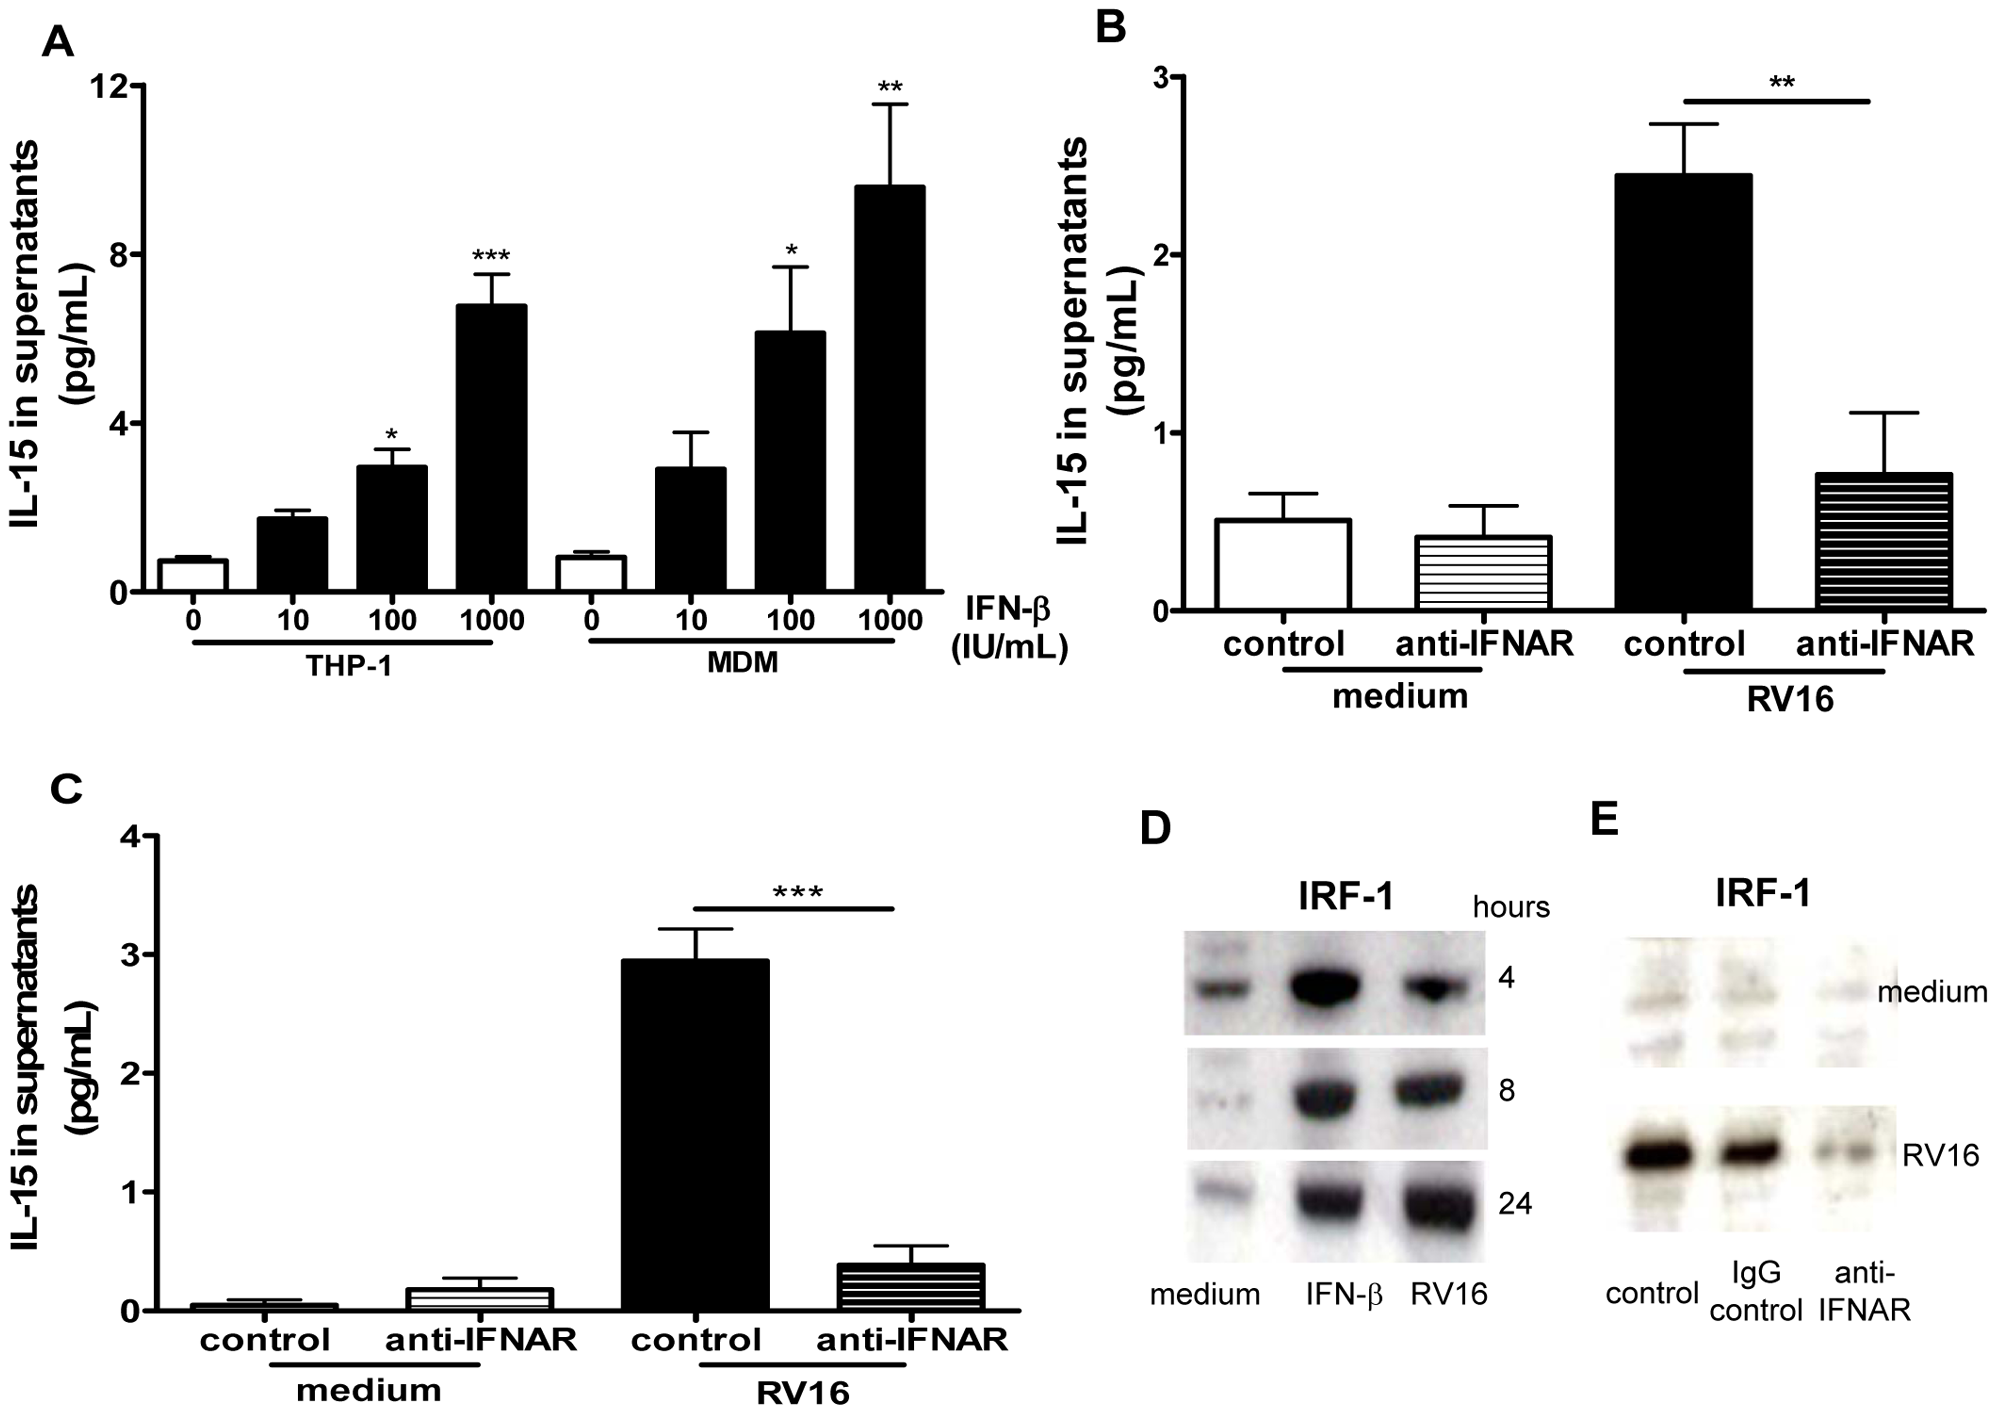 IFN-β induces IL-15 in macrophages and rhinovirus induction is via IFN-αβ receptor signalling.